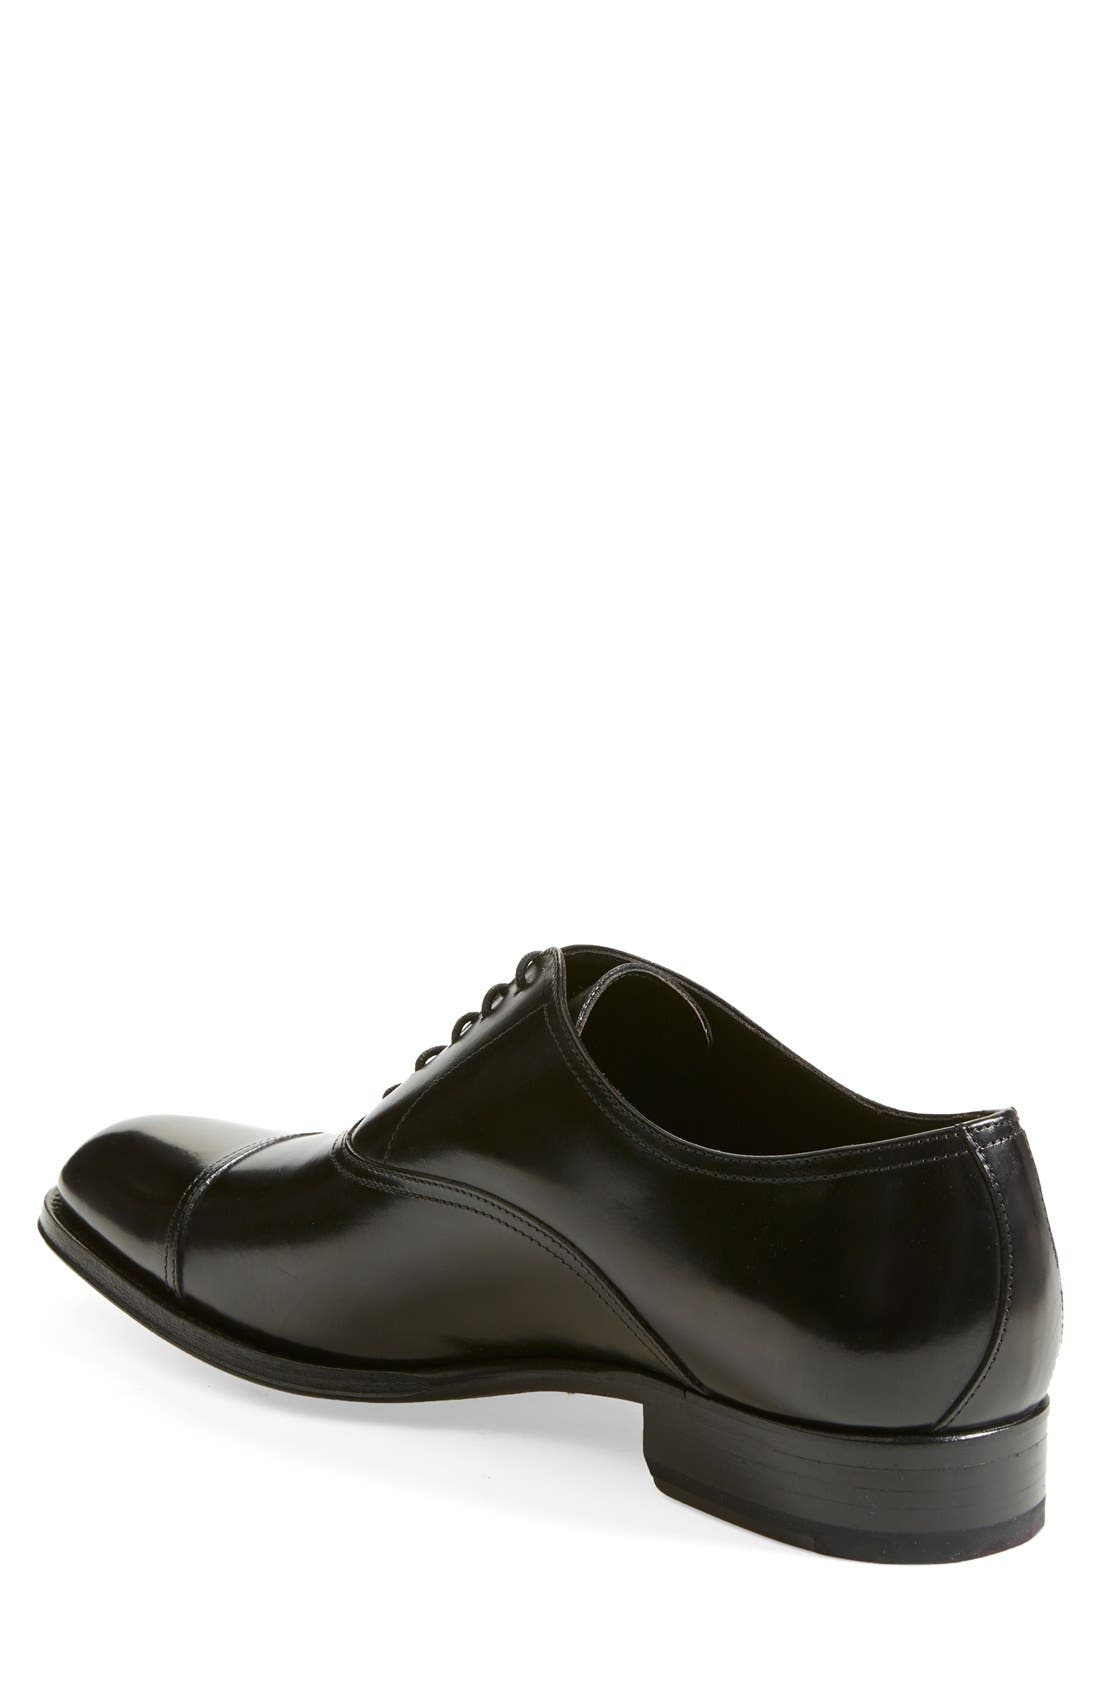 TO BOOT NEW YORK, Brandon Cap Toe Oxford, Alternate thumbnail 3, color, BLACK LEATHER